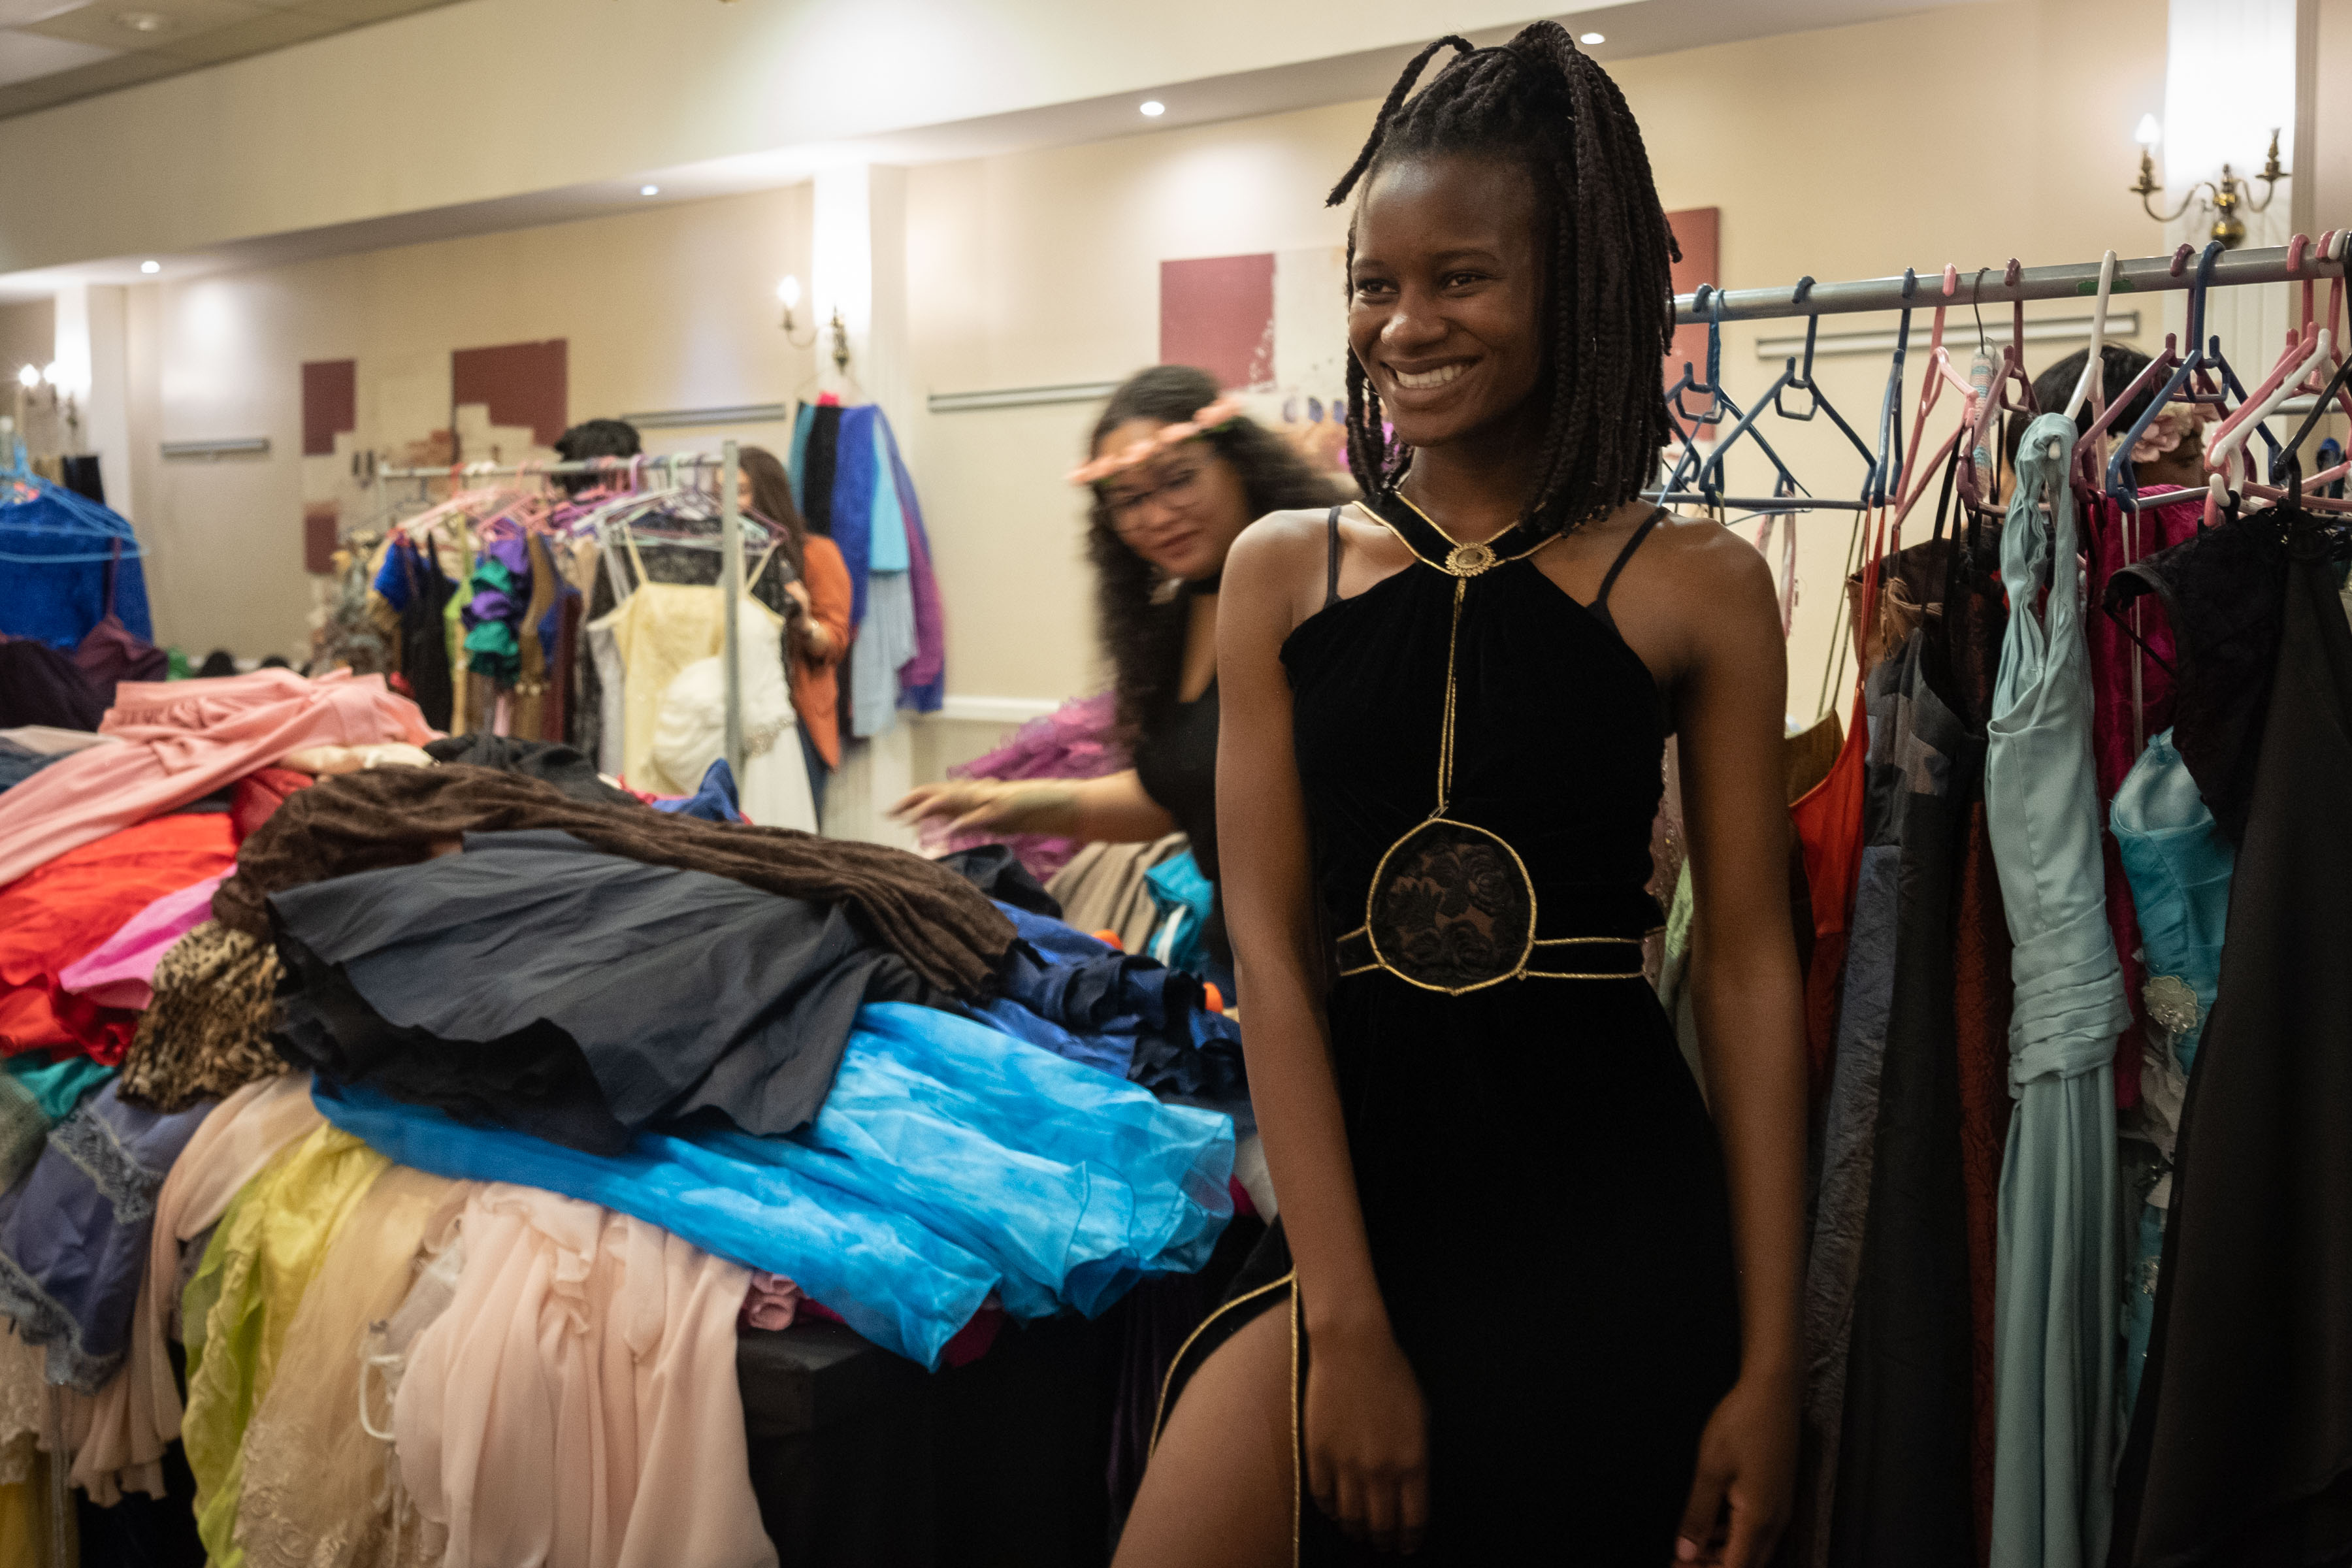 9 August 2019: Goodness Muntswu tries out a dress she may wear to her matric dance. She can borrow the outfit free of charge and has three weeks after the event to return it.